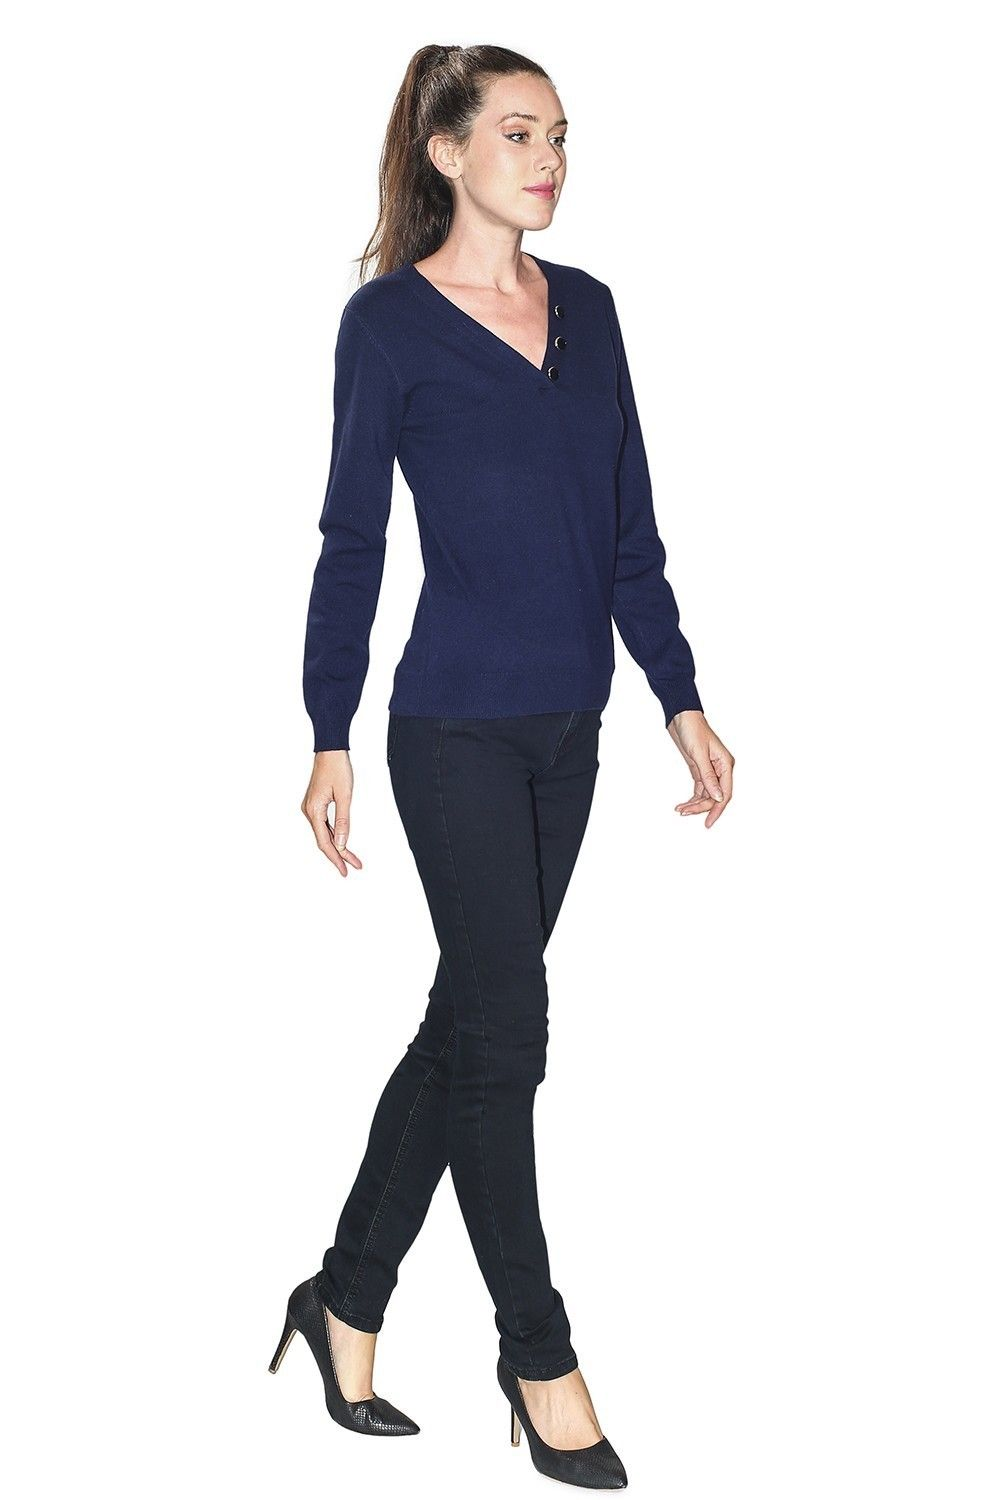 C&JO V-neck Button Detail Sweater in Navy